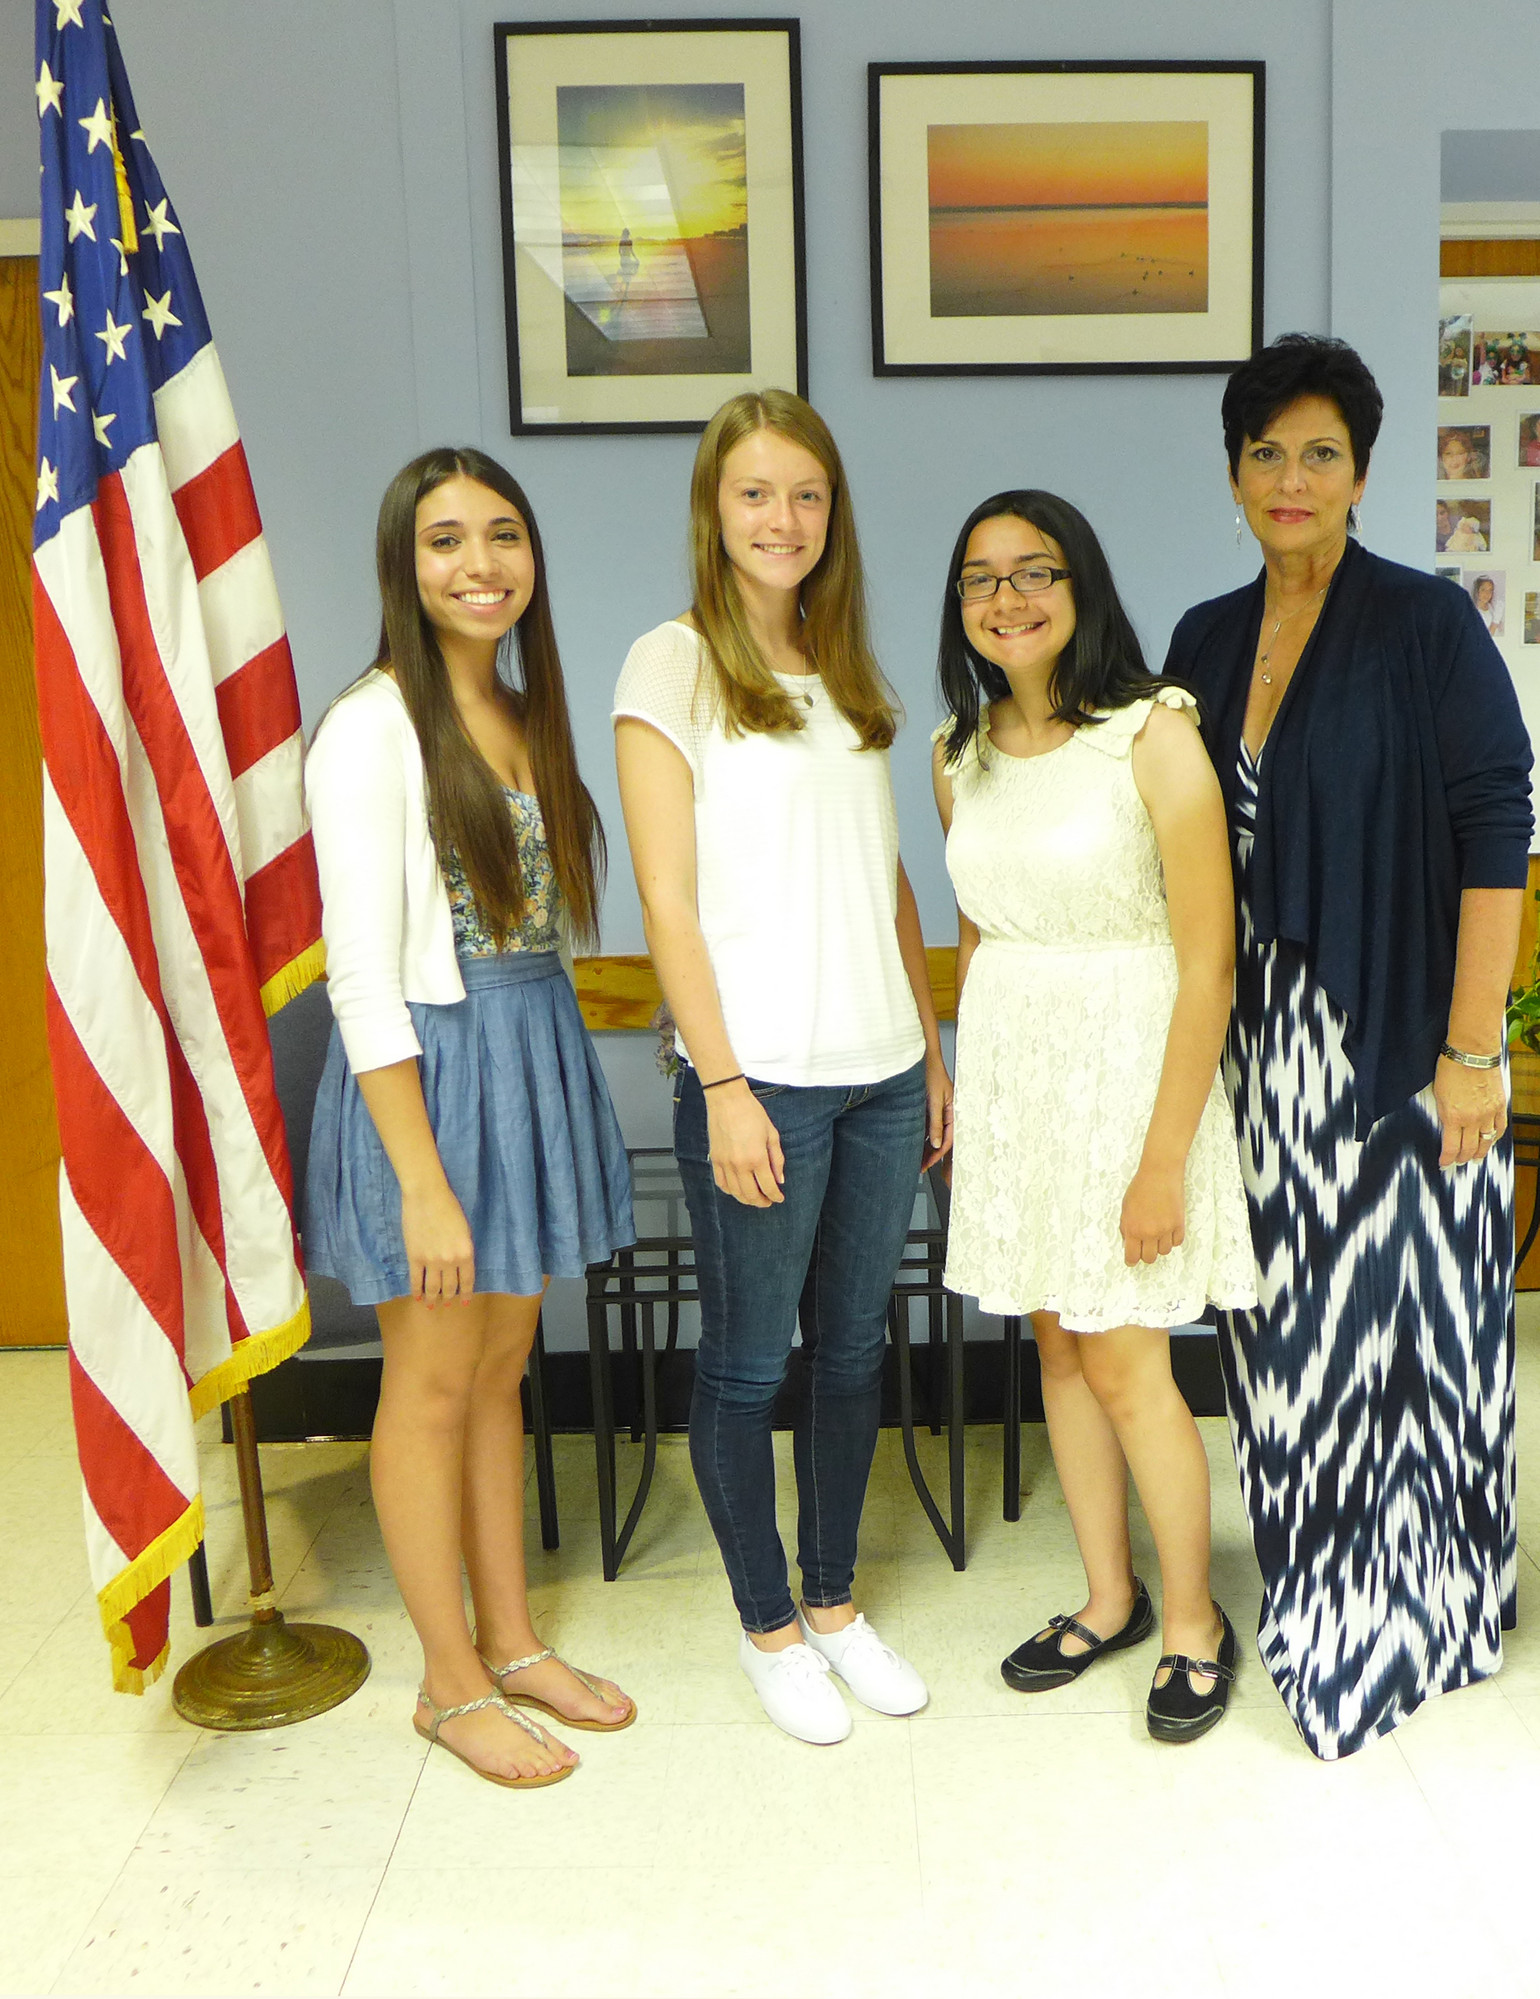 The three OHS seniors who earned semifinalist status in the prestigious National Merit Scholarship process are, from left, Brittany Kwait, Marissa Colasacco and Stephanie Nagel. They are pictured with new Oceanside High School Principal Geraldine DeCarlo.